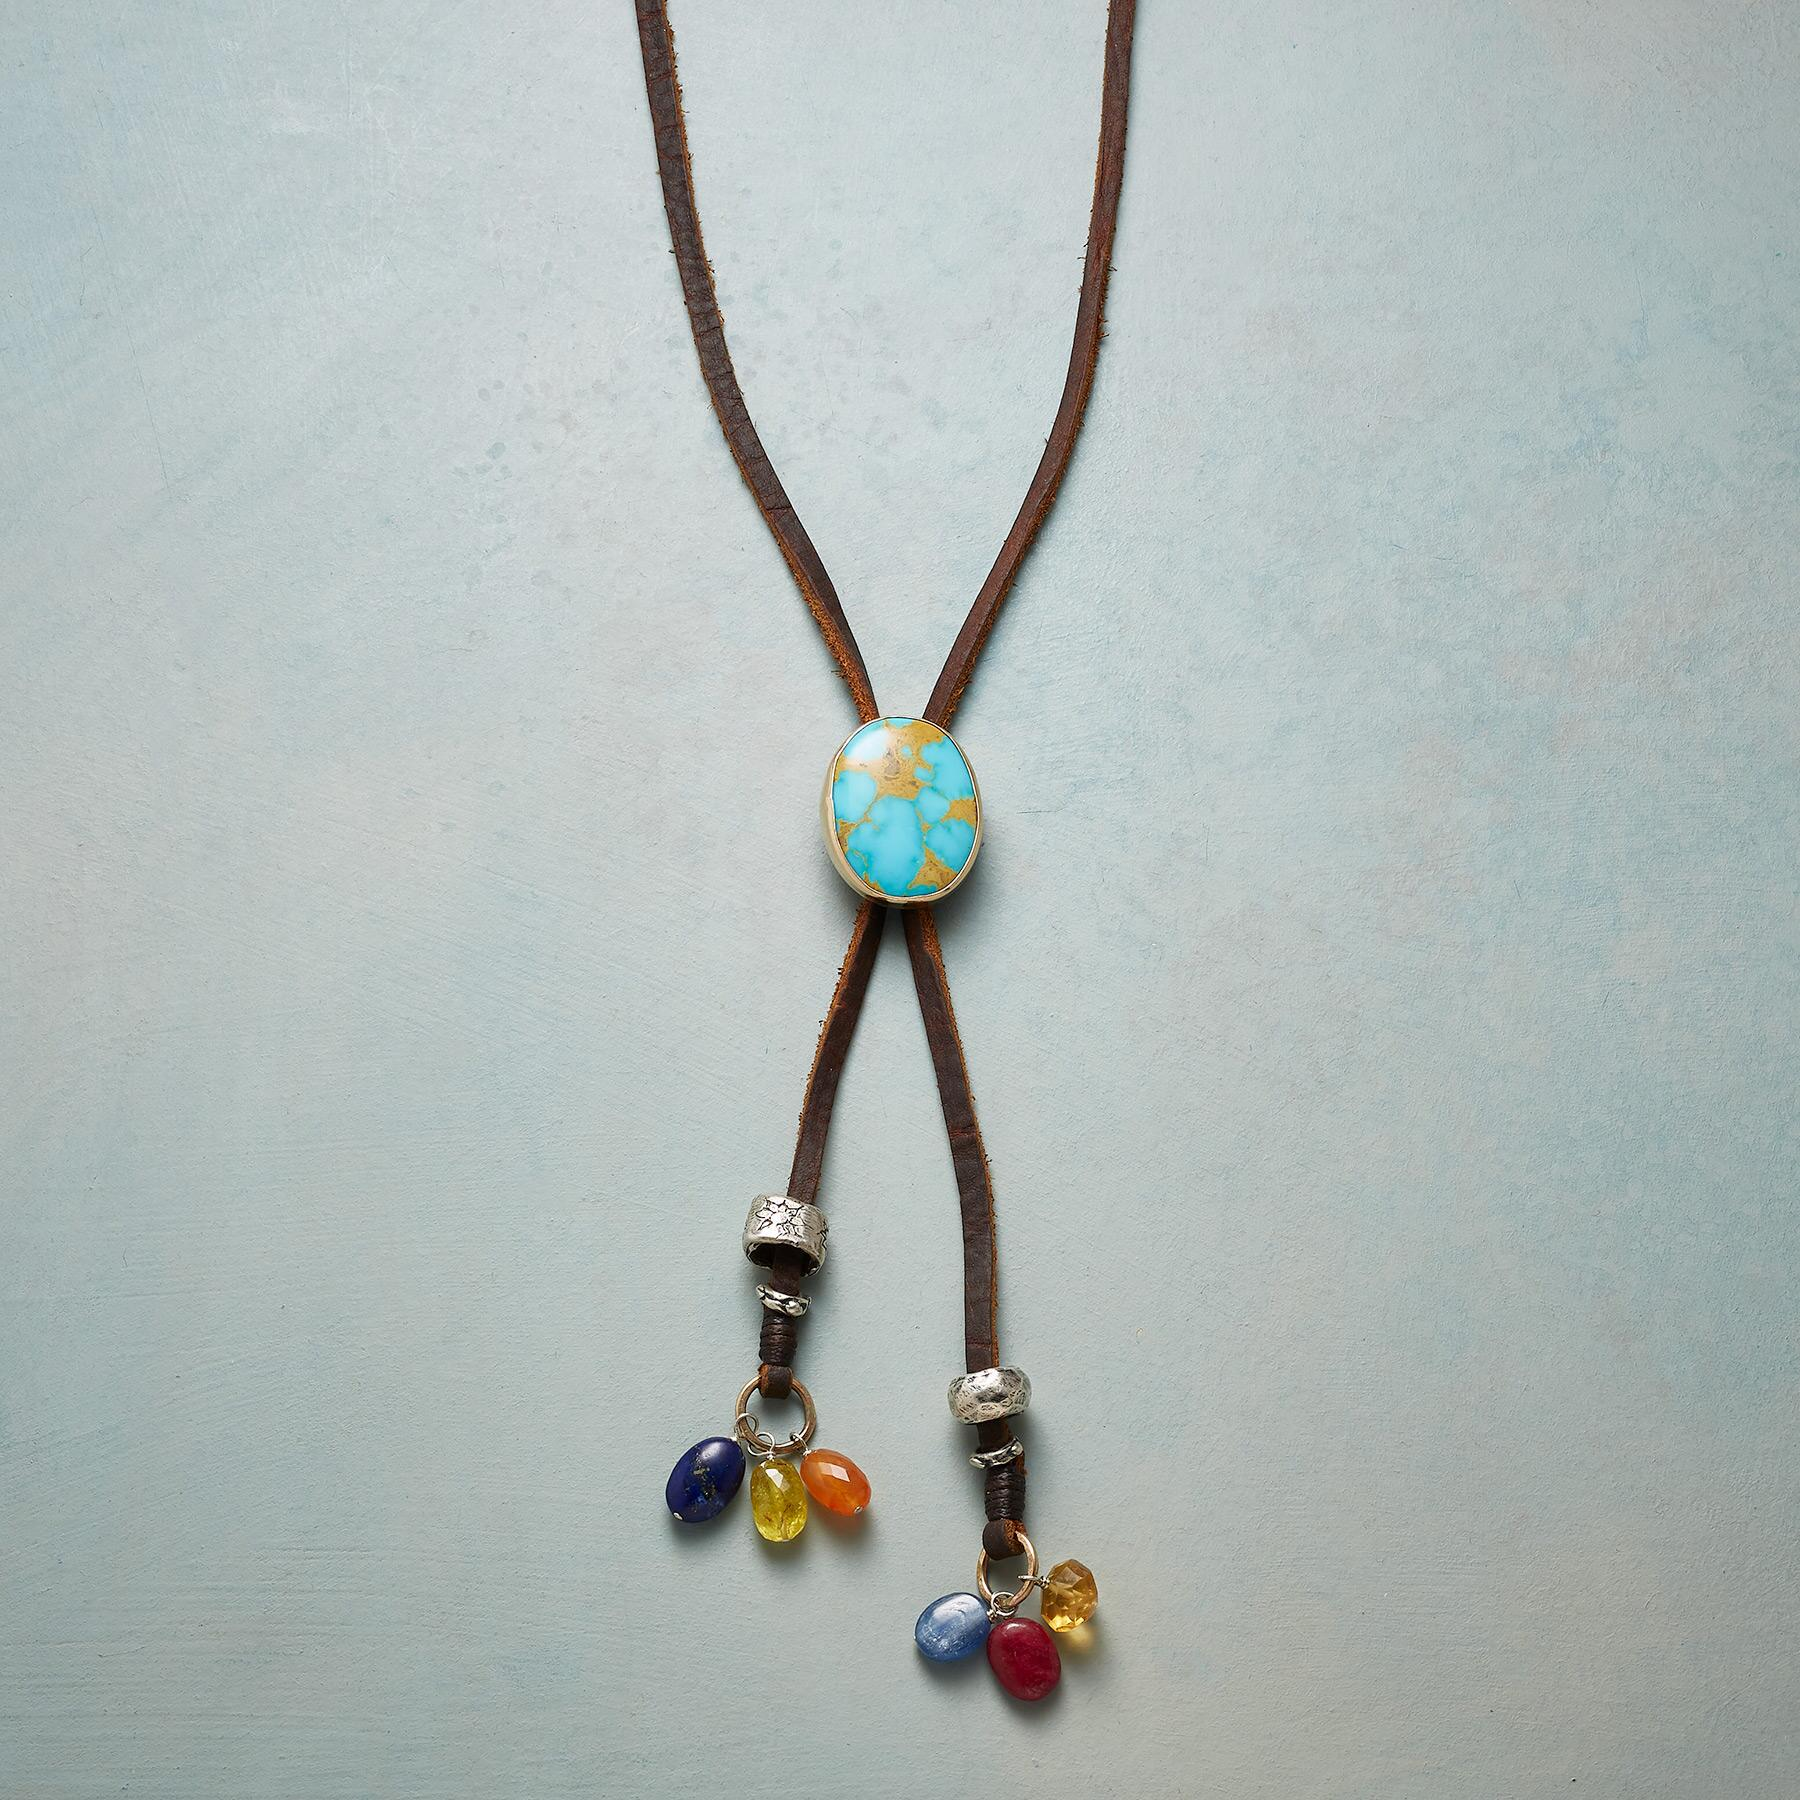 NEW WEST BOLO NECKLACE: View 1